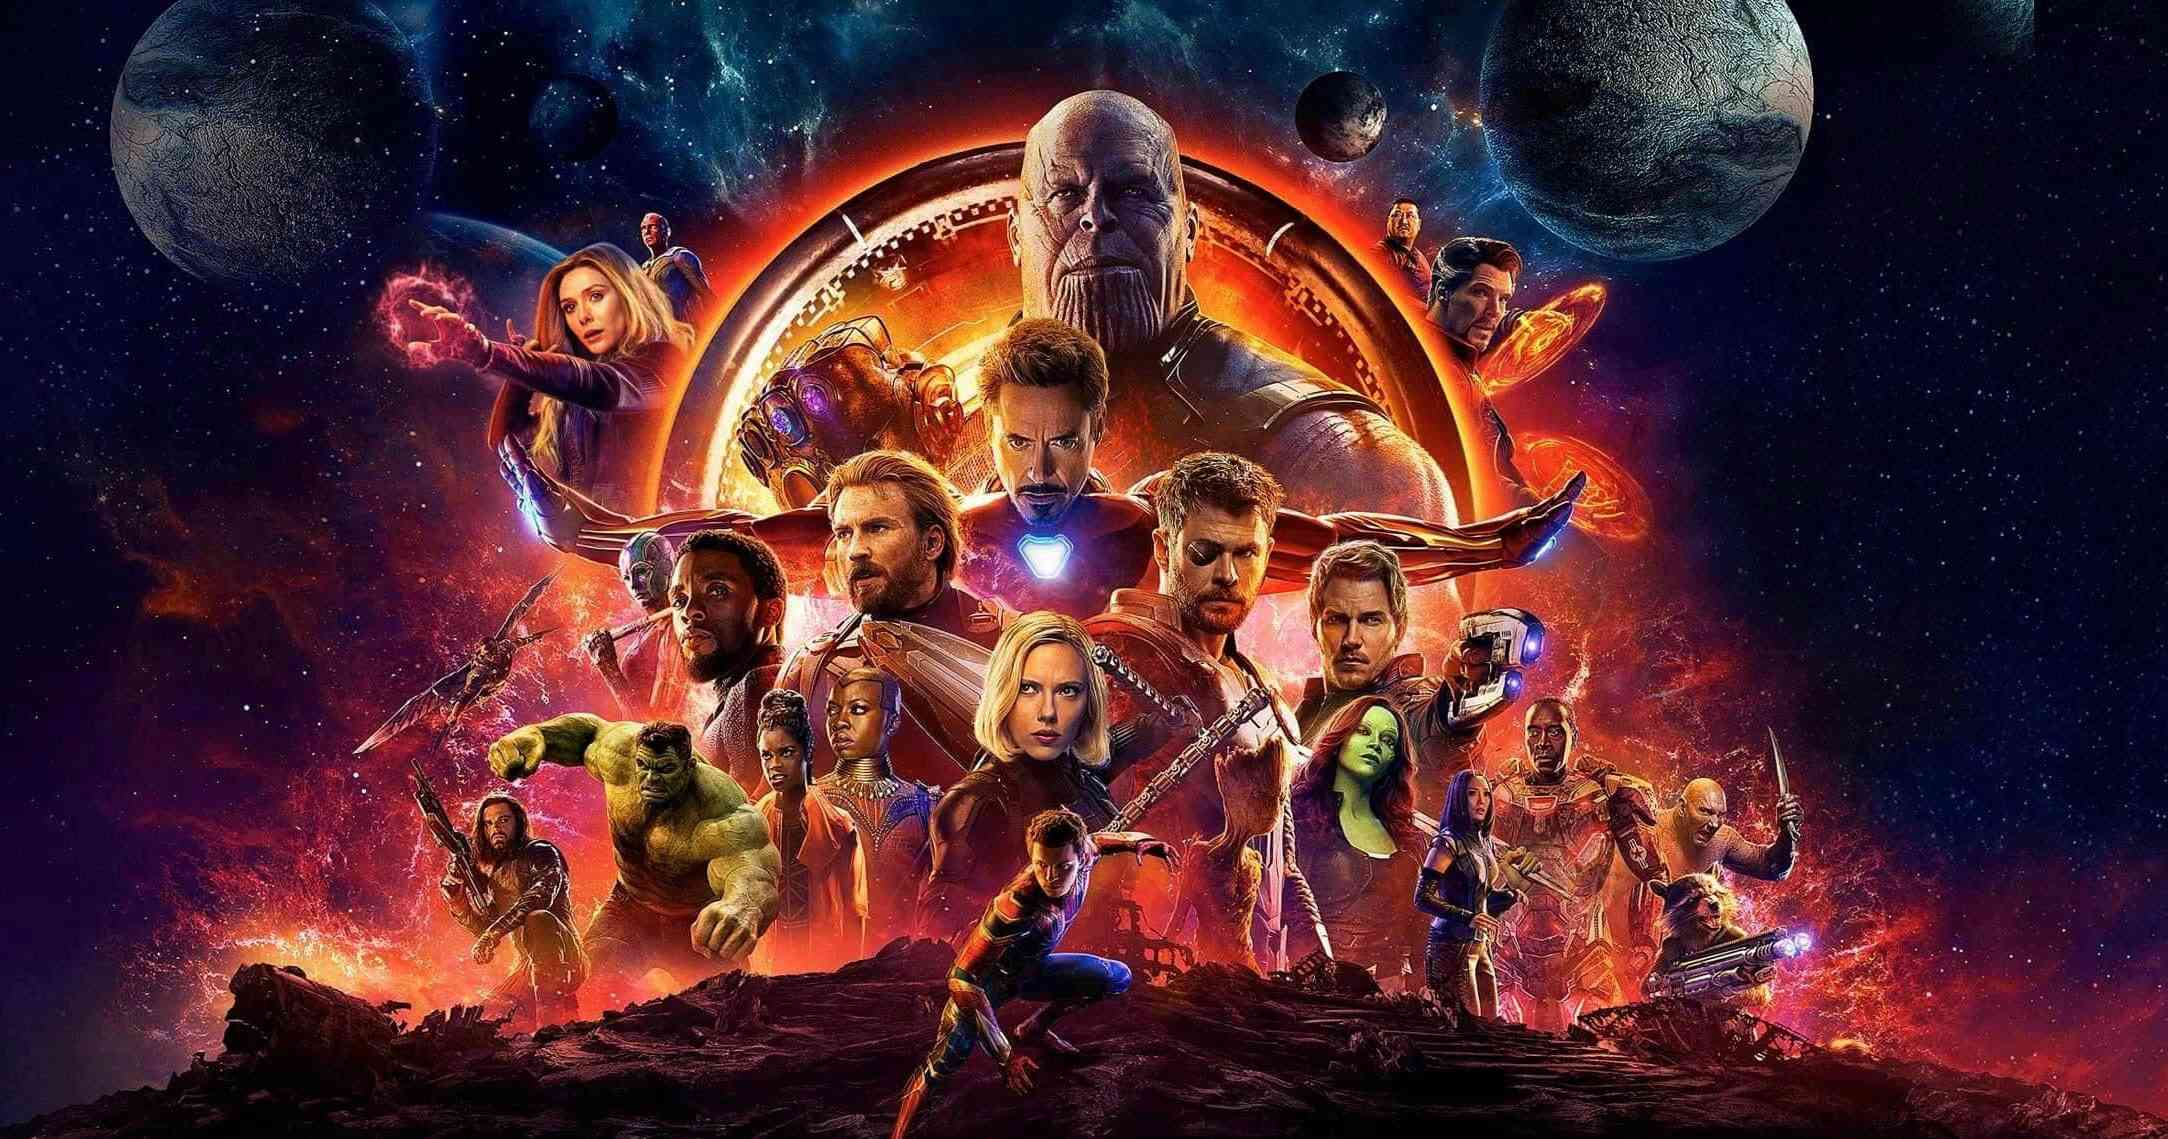 You are currently viewing Notes On A Film – Avengers: Infinity War